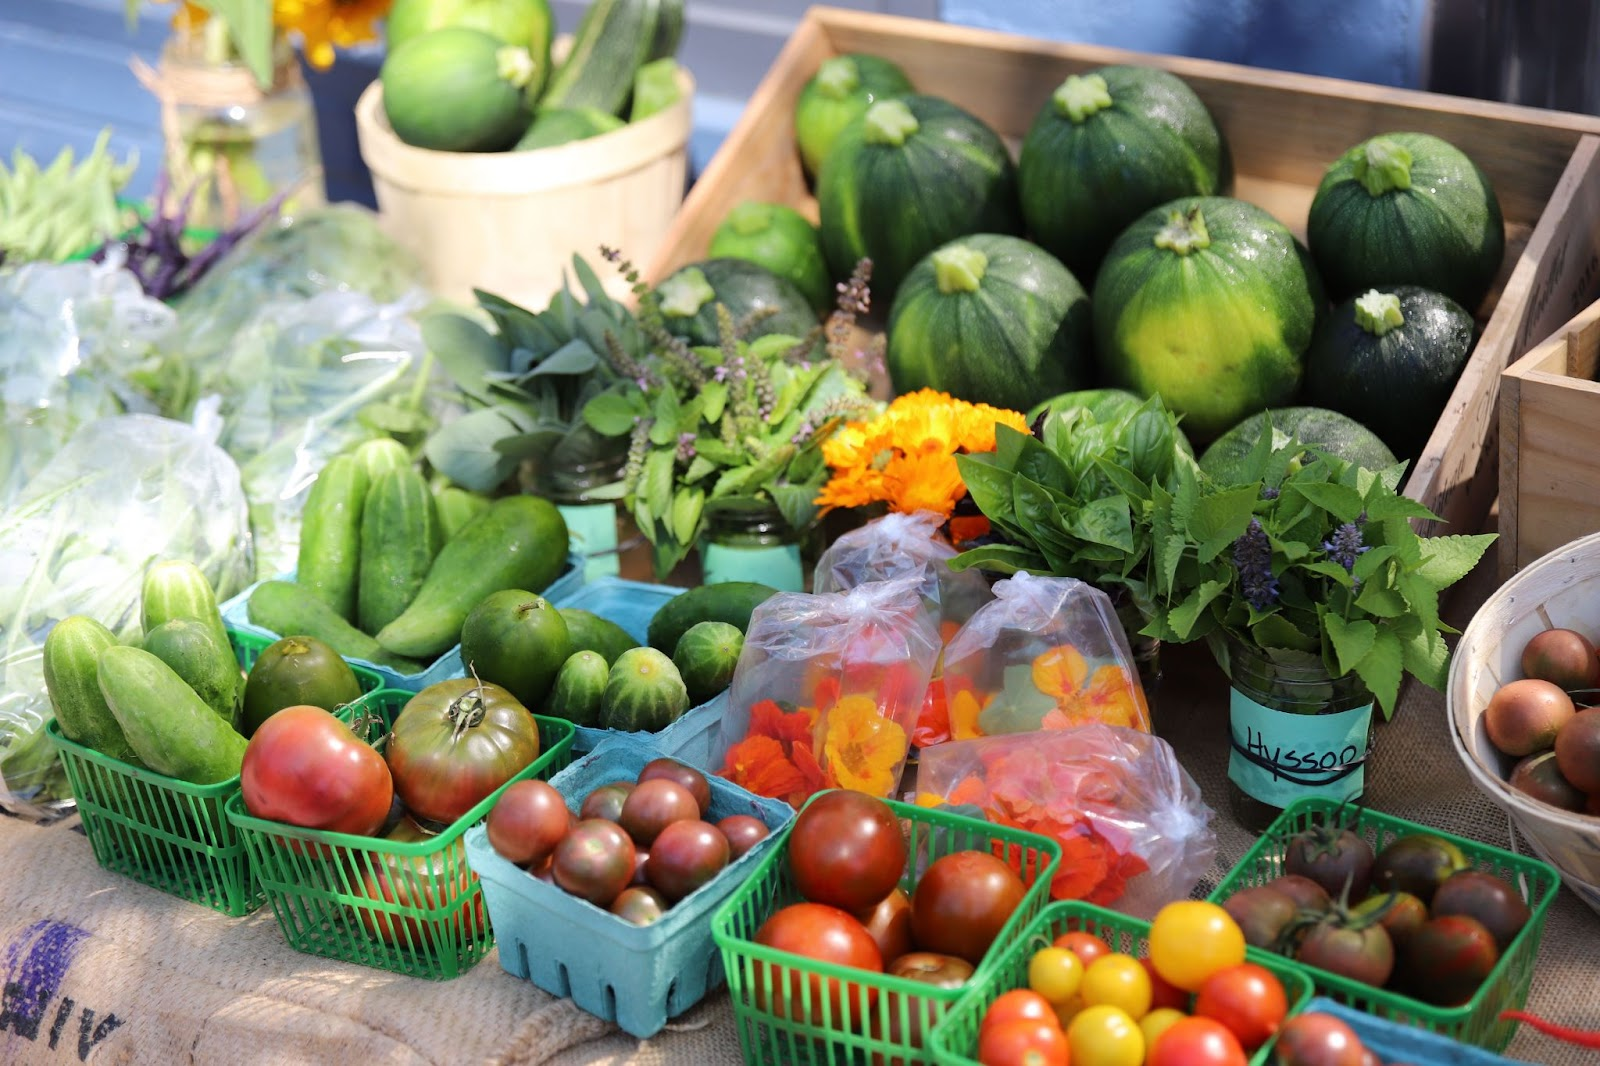 A spread of vegetables including cucumbers, tomatoes, cheery tomatoes and zucchini laid out on a table at a farmer's market.